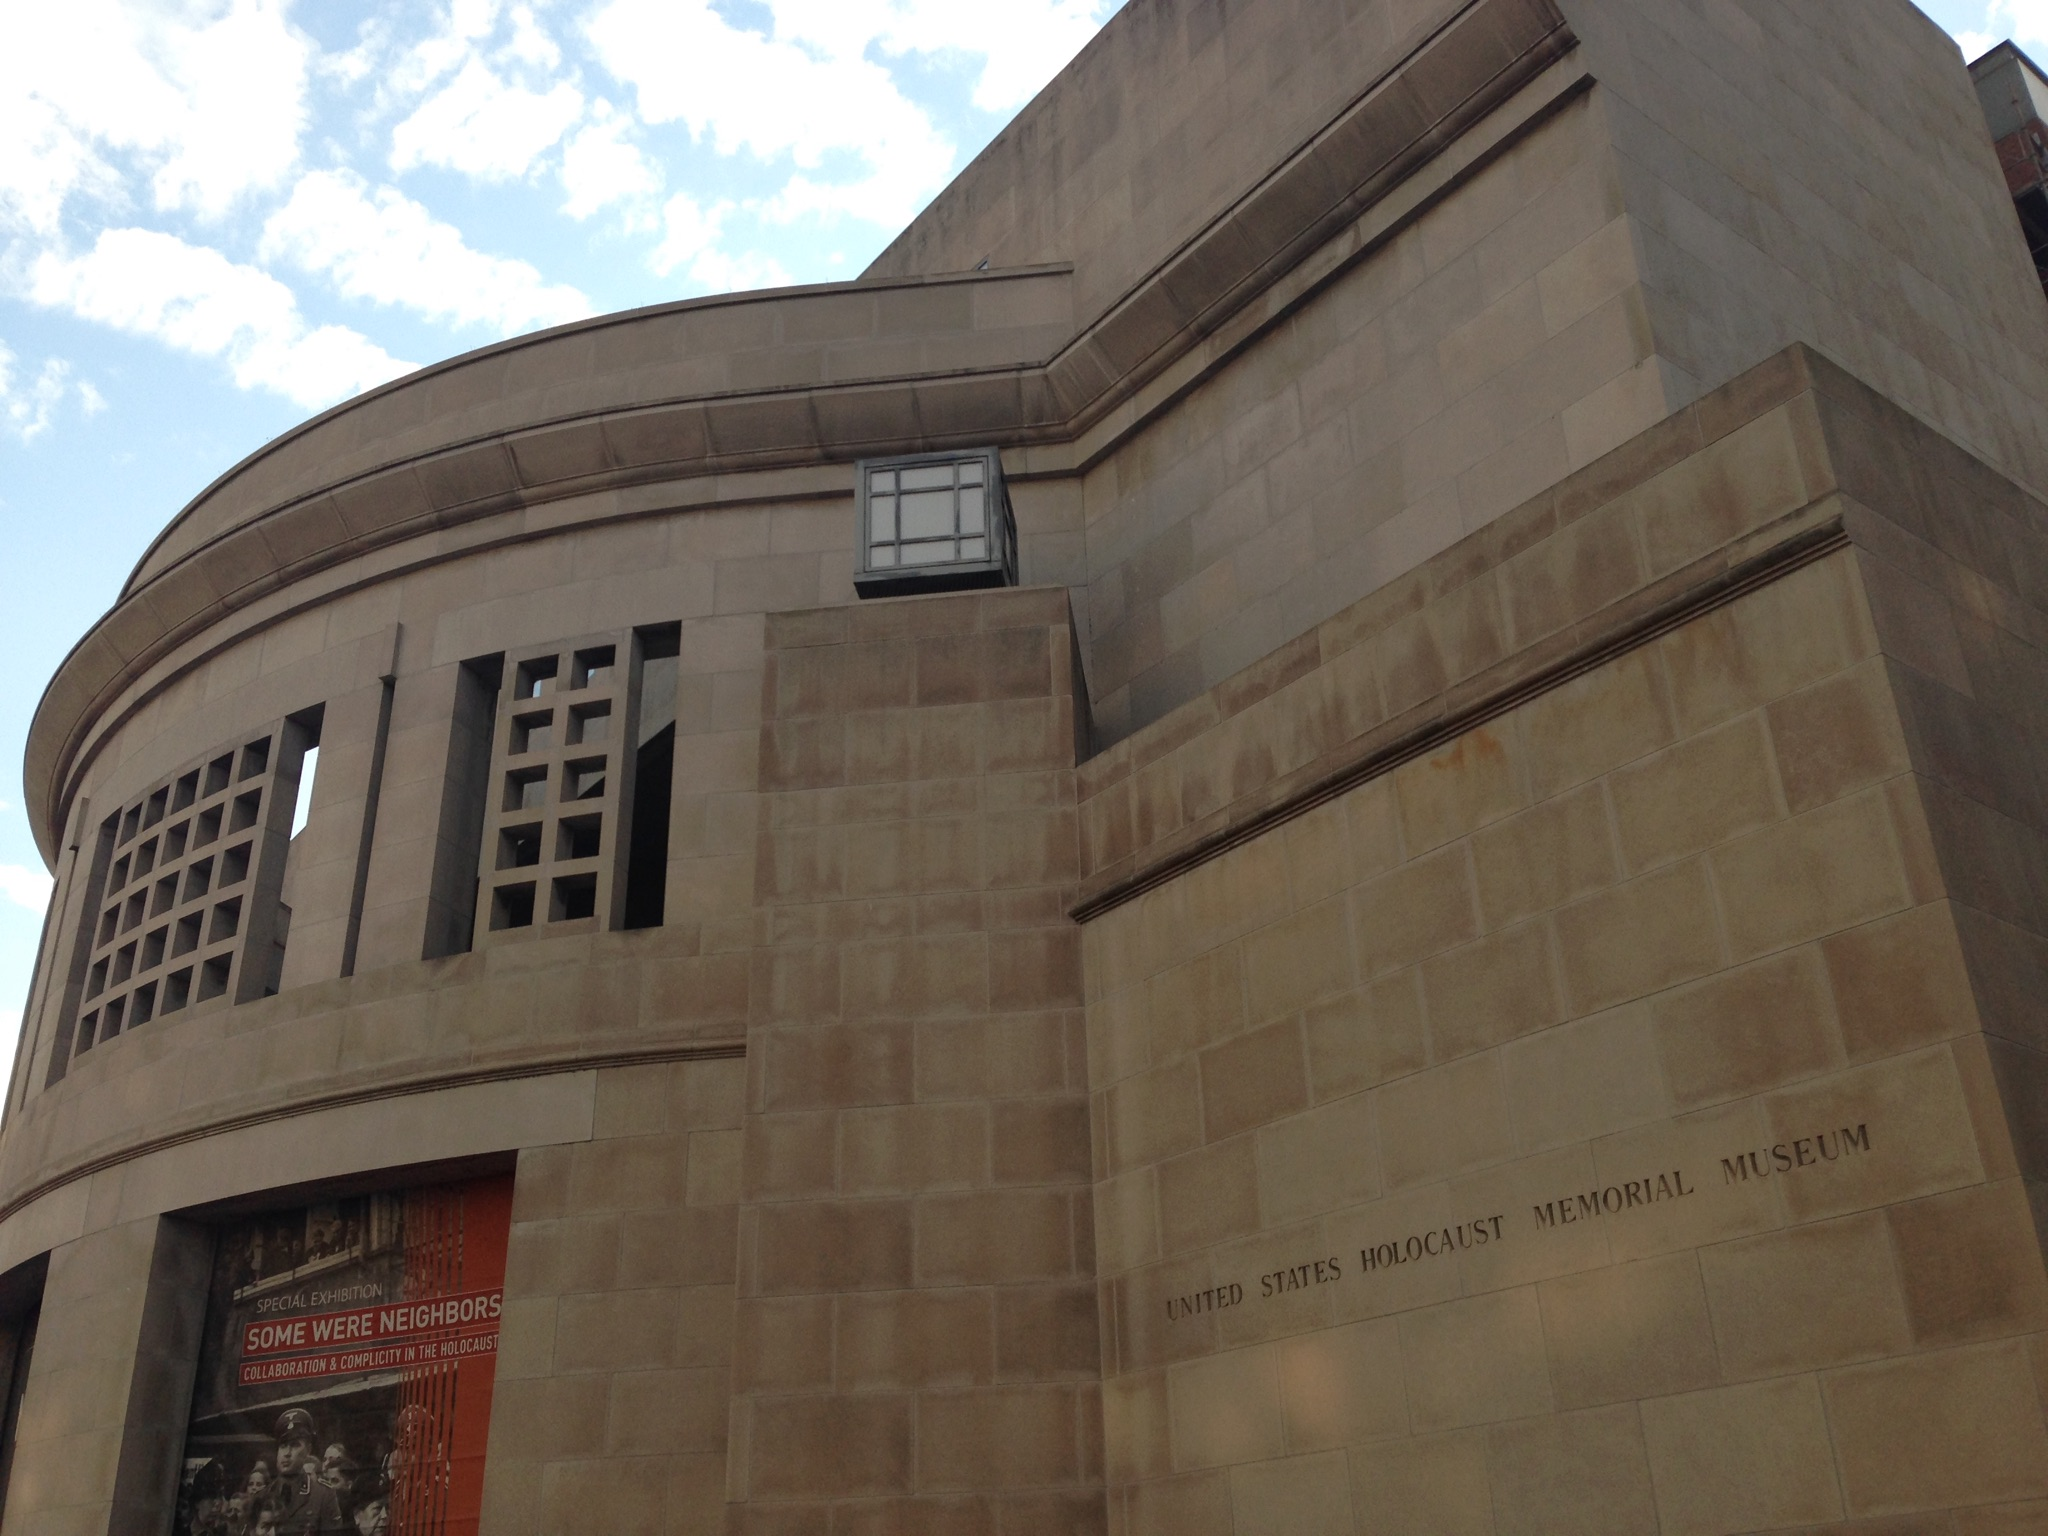 The United States Holocaust Memorial Museum in Washington, DC, October 27, 2016